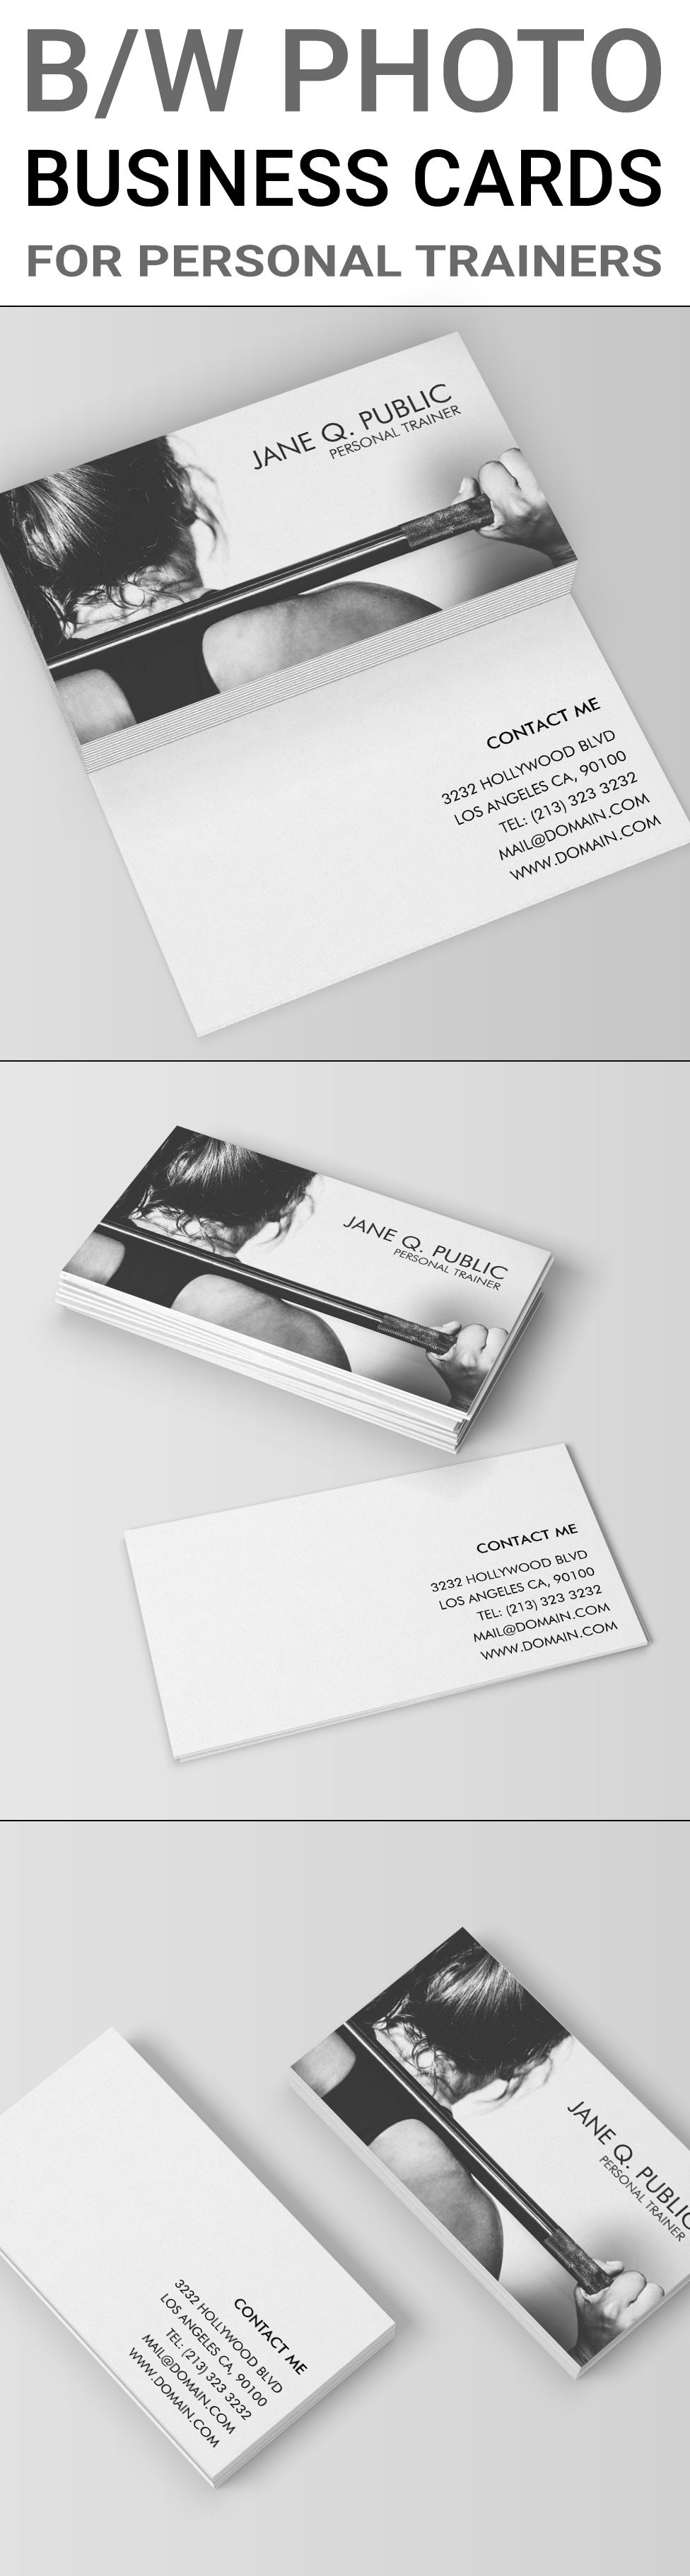 Black and white business cards template for personal trainers ...